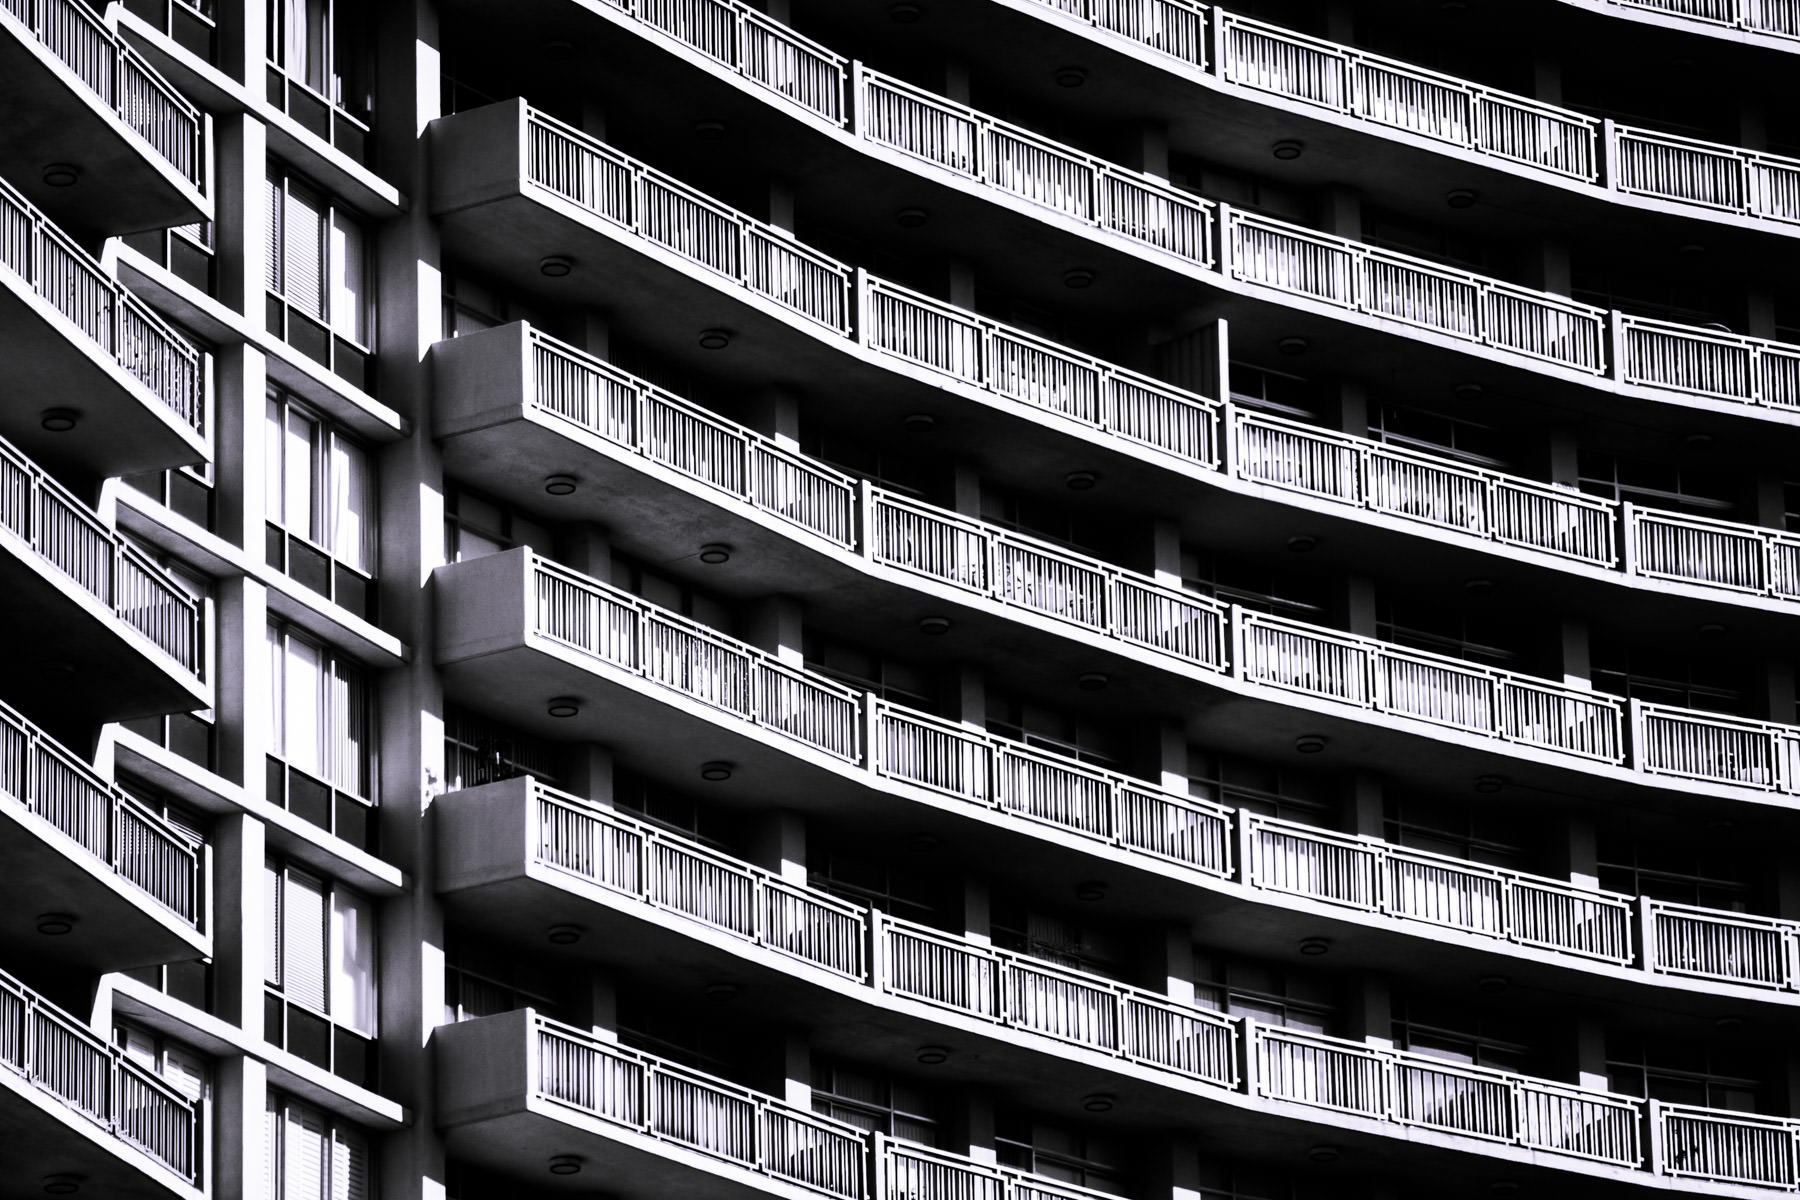 Balconies on a high rise condo tower in North Dallas, Texas.